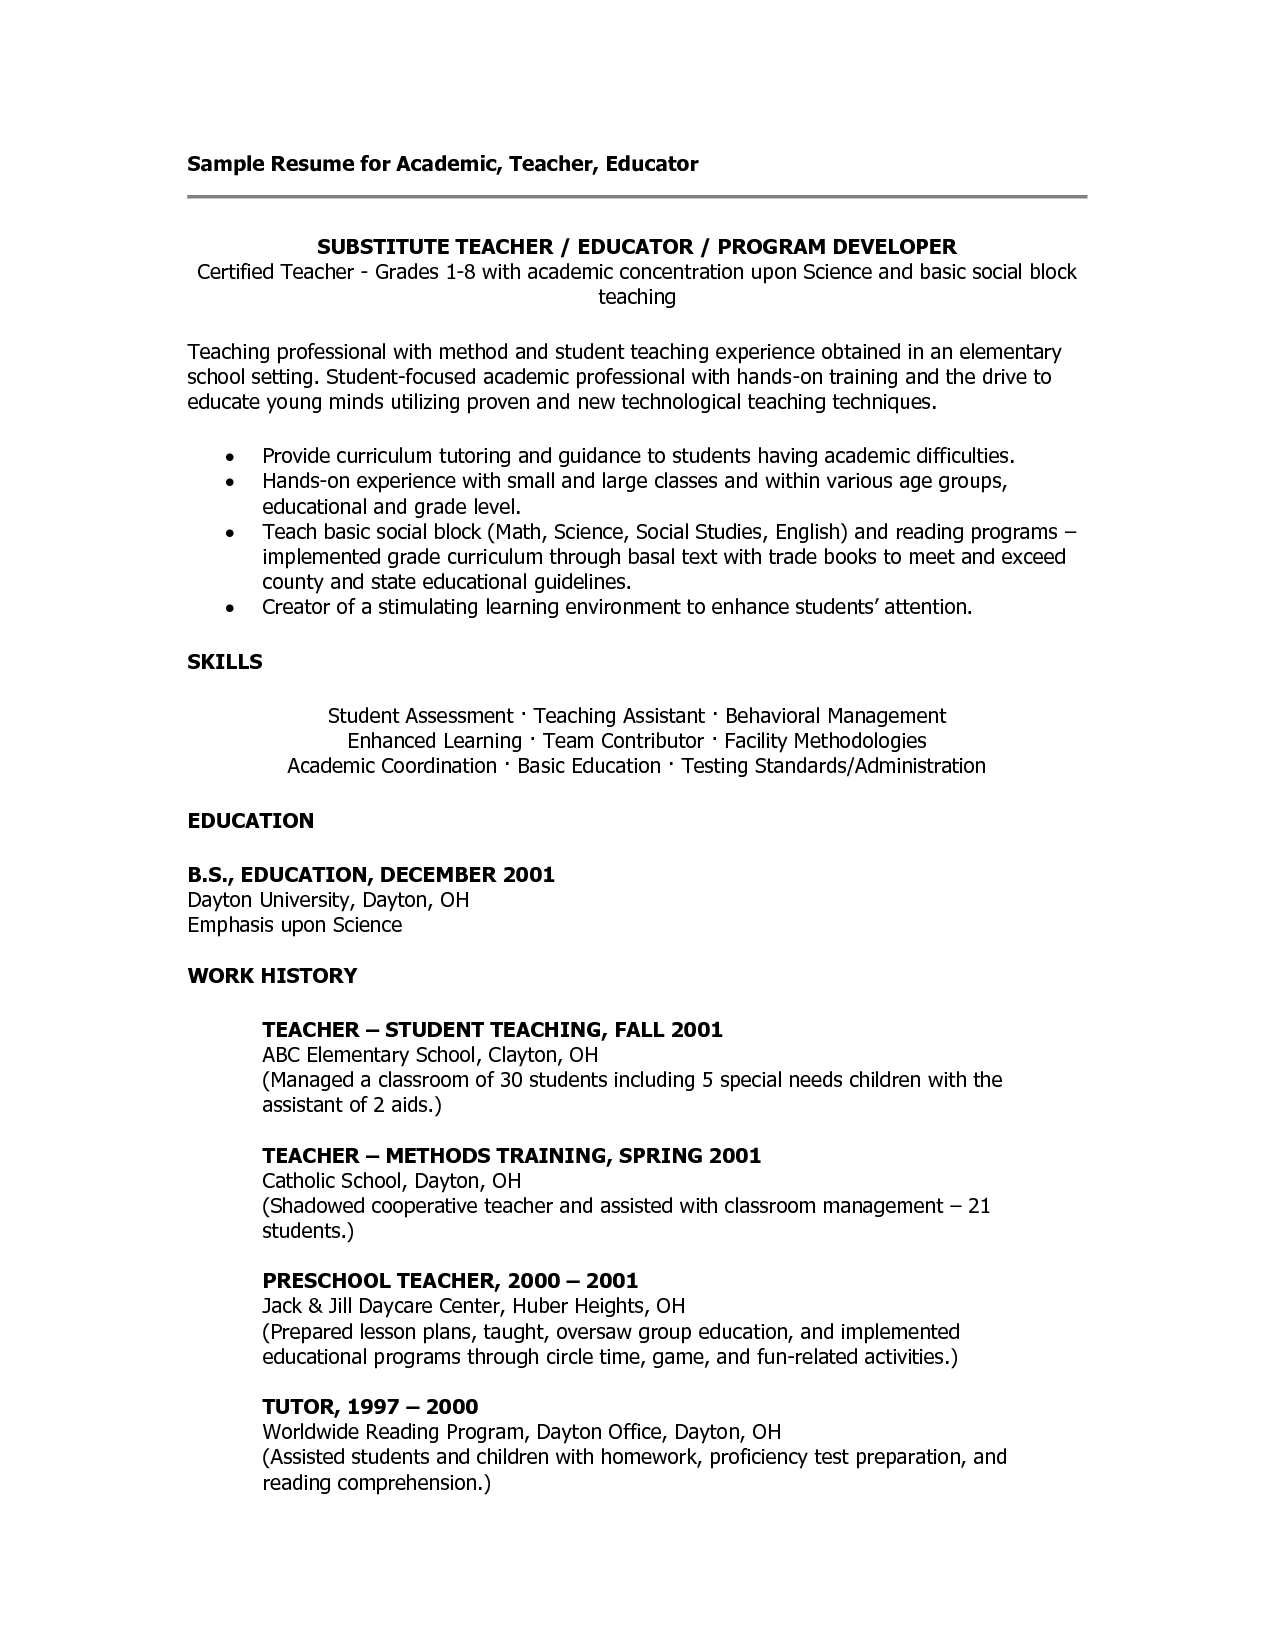 sample teacher resumes substitute teacher resume - Student Teacher Resume